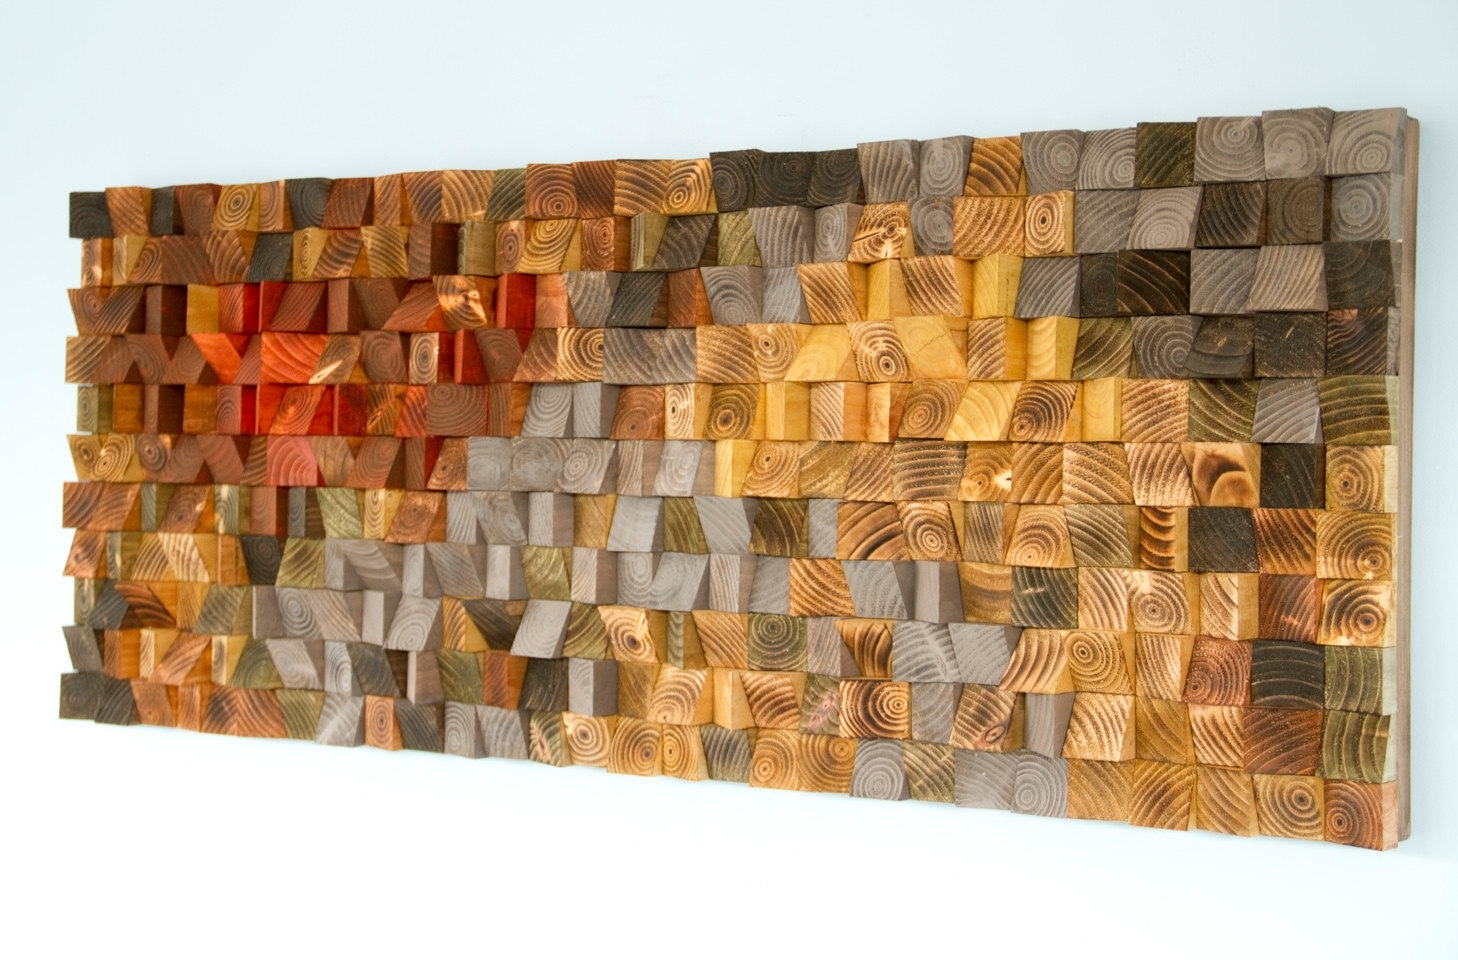 Rustic Wood Wall Art, Wood Wall Sculpture, Abstract Wood Art – Art For Most Up To Date Wood Art Wall (View 8 of 15)